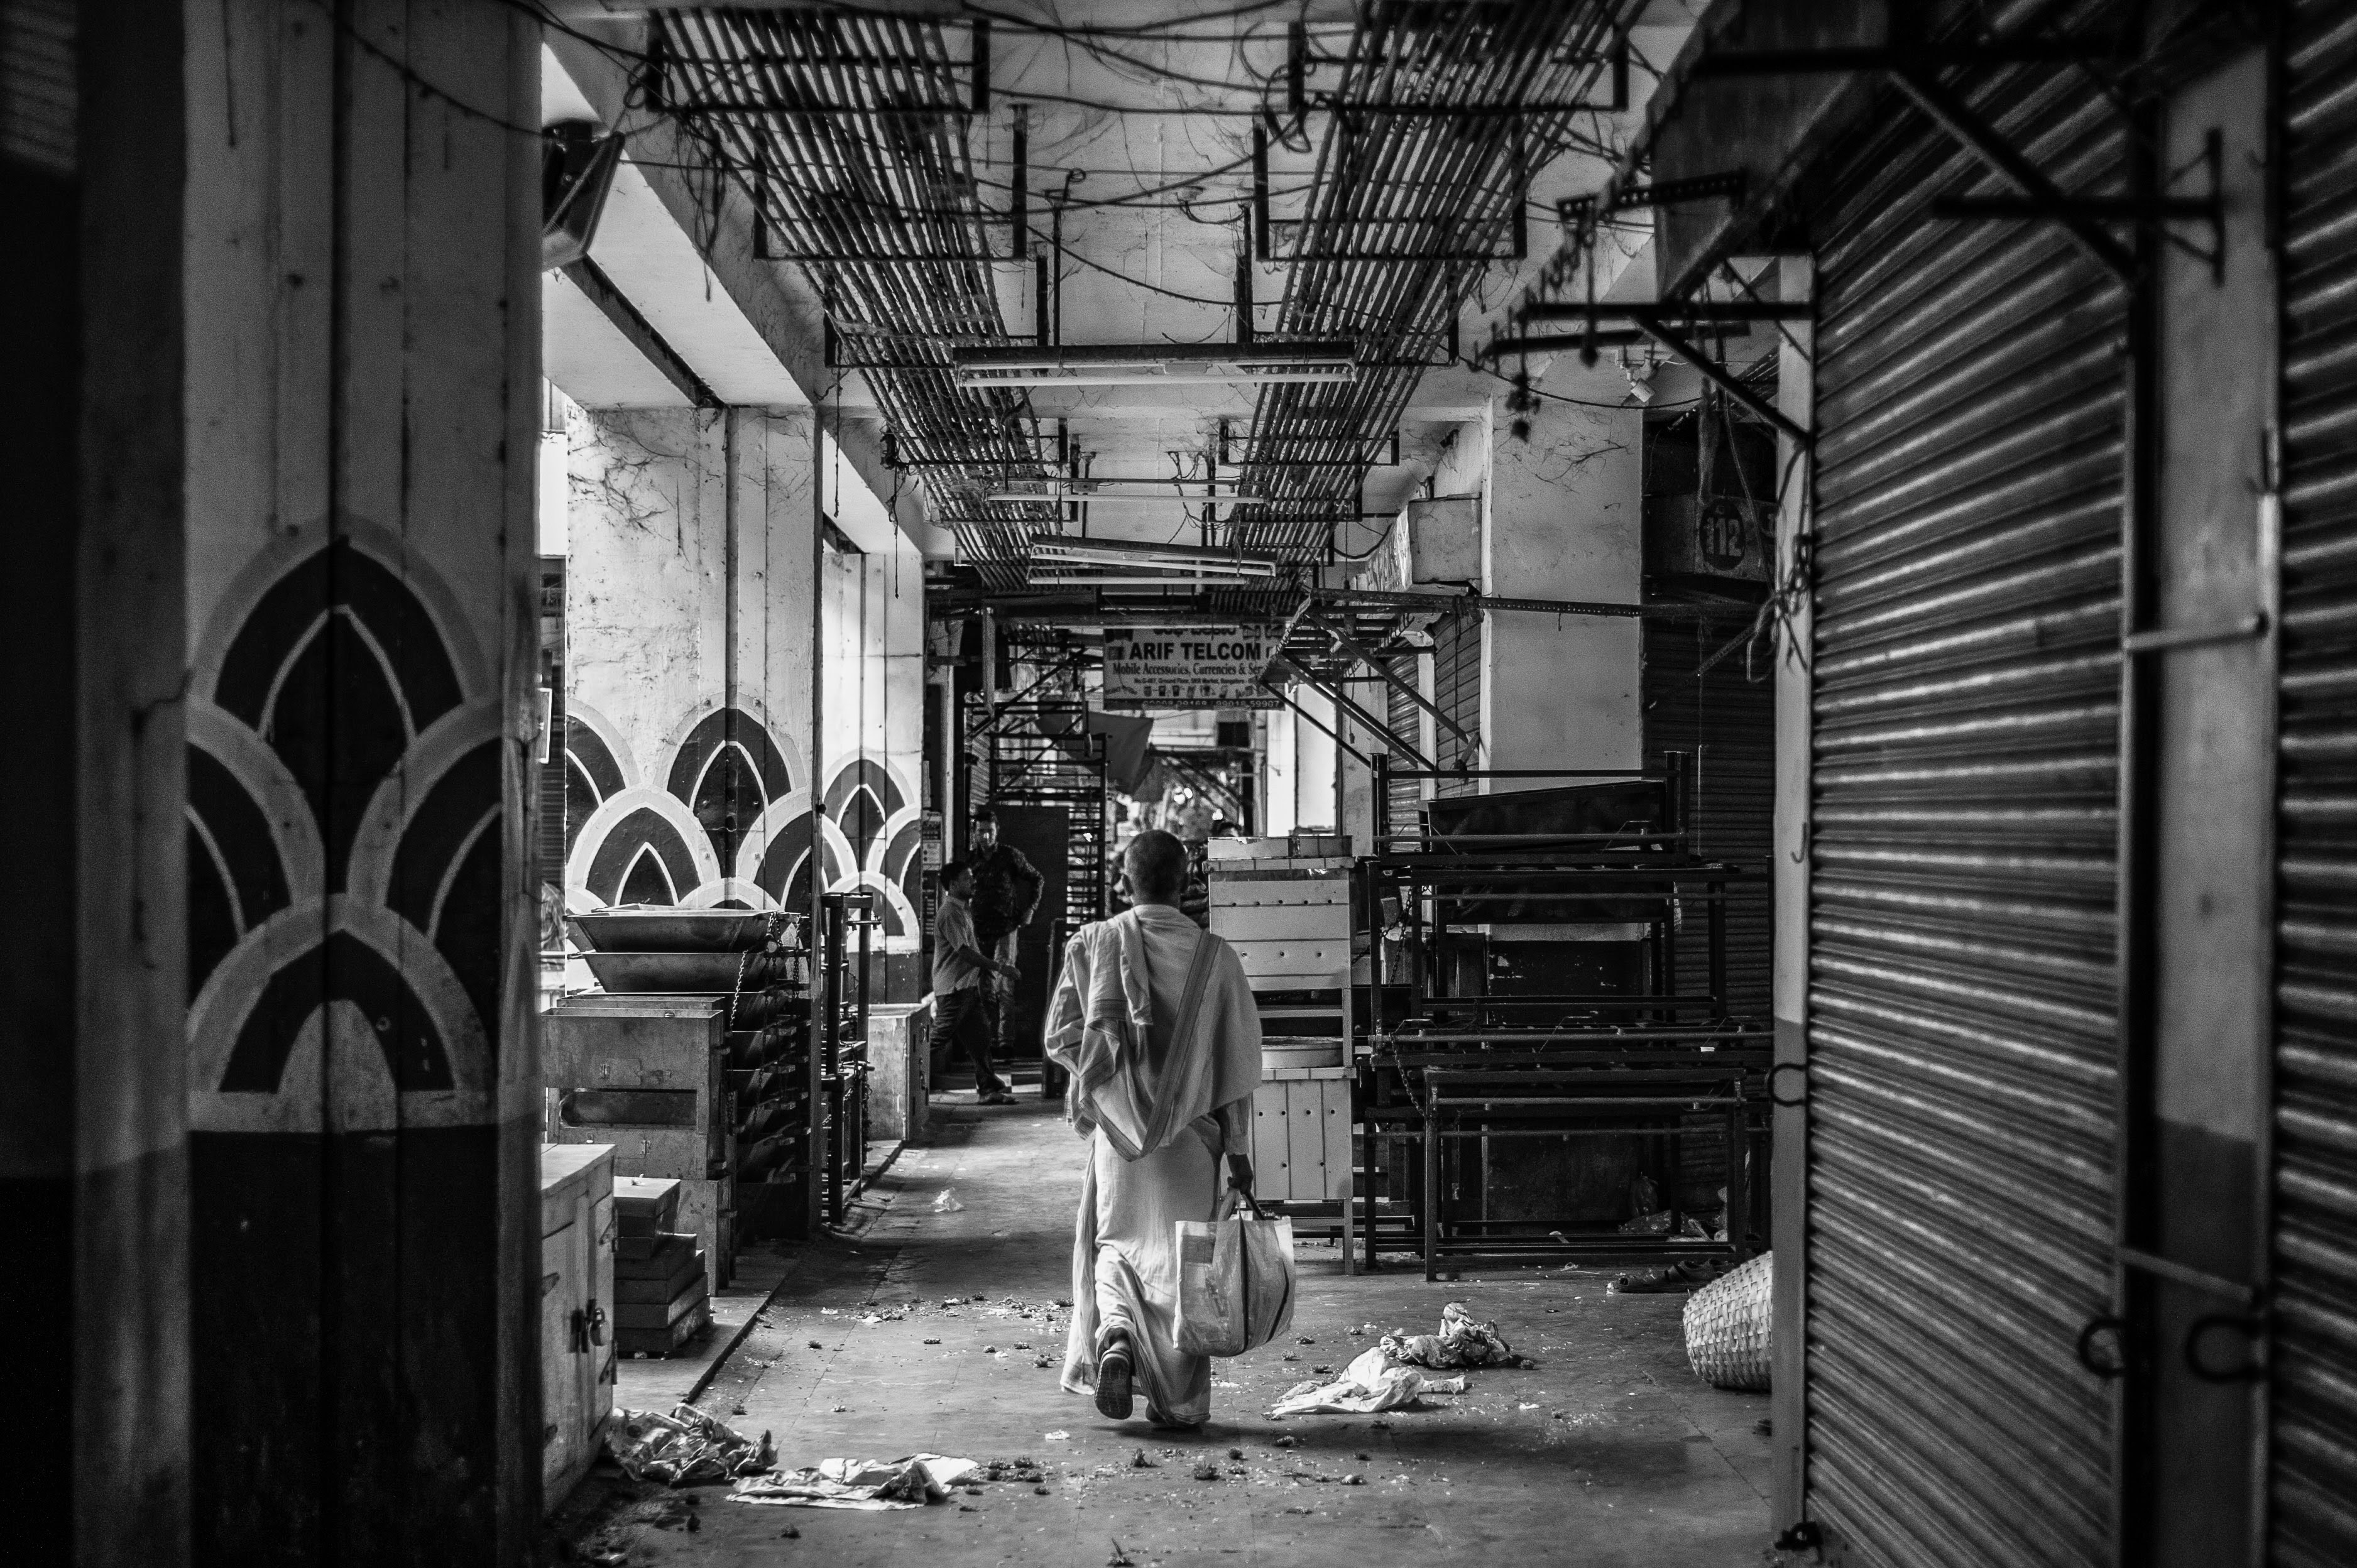 A black and white image of man carrying a plastic bag, walking through an empty KR Market in Bangalore.